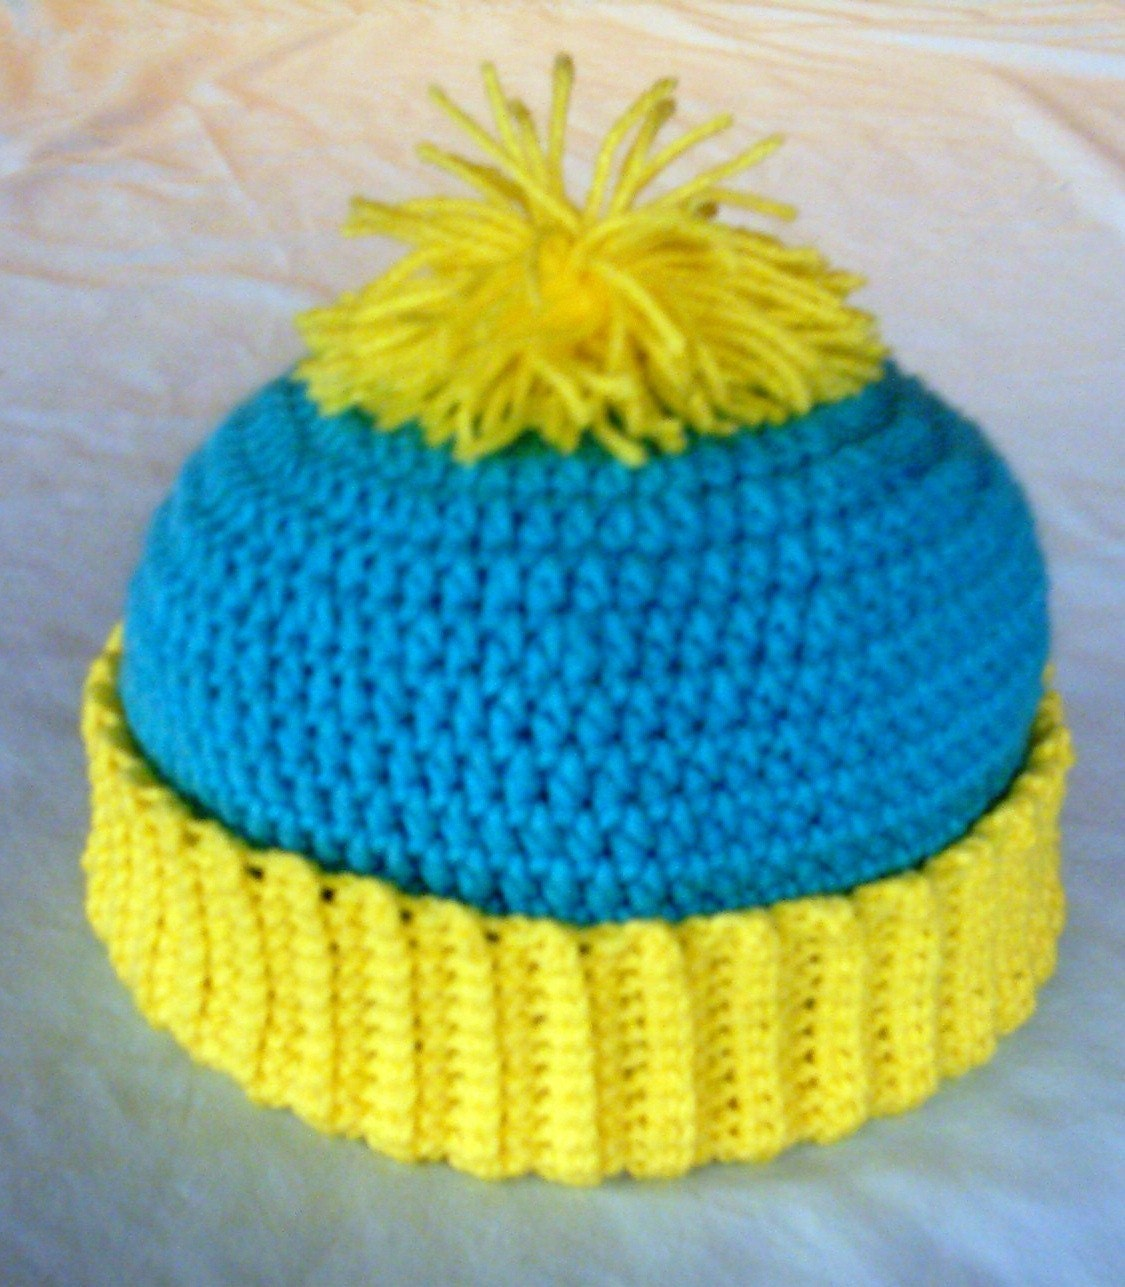 Crochet Stitches - How To Information | eHow.com